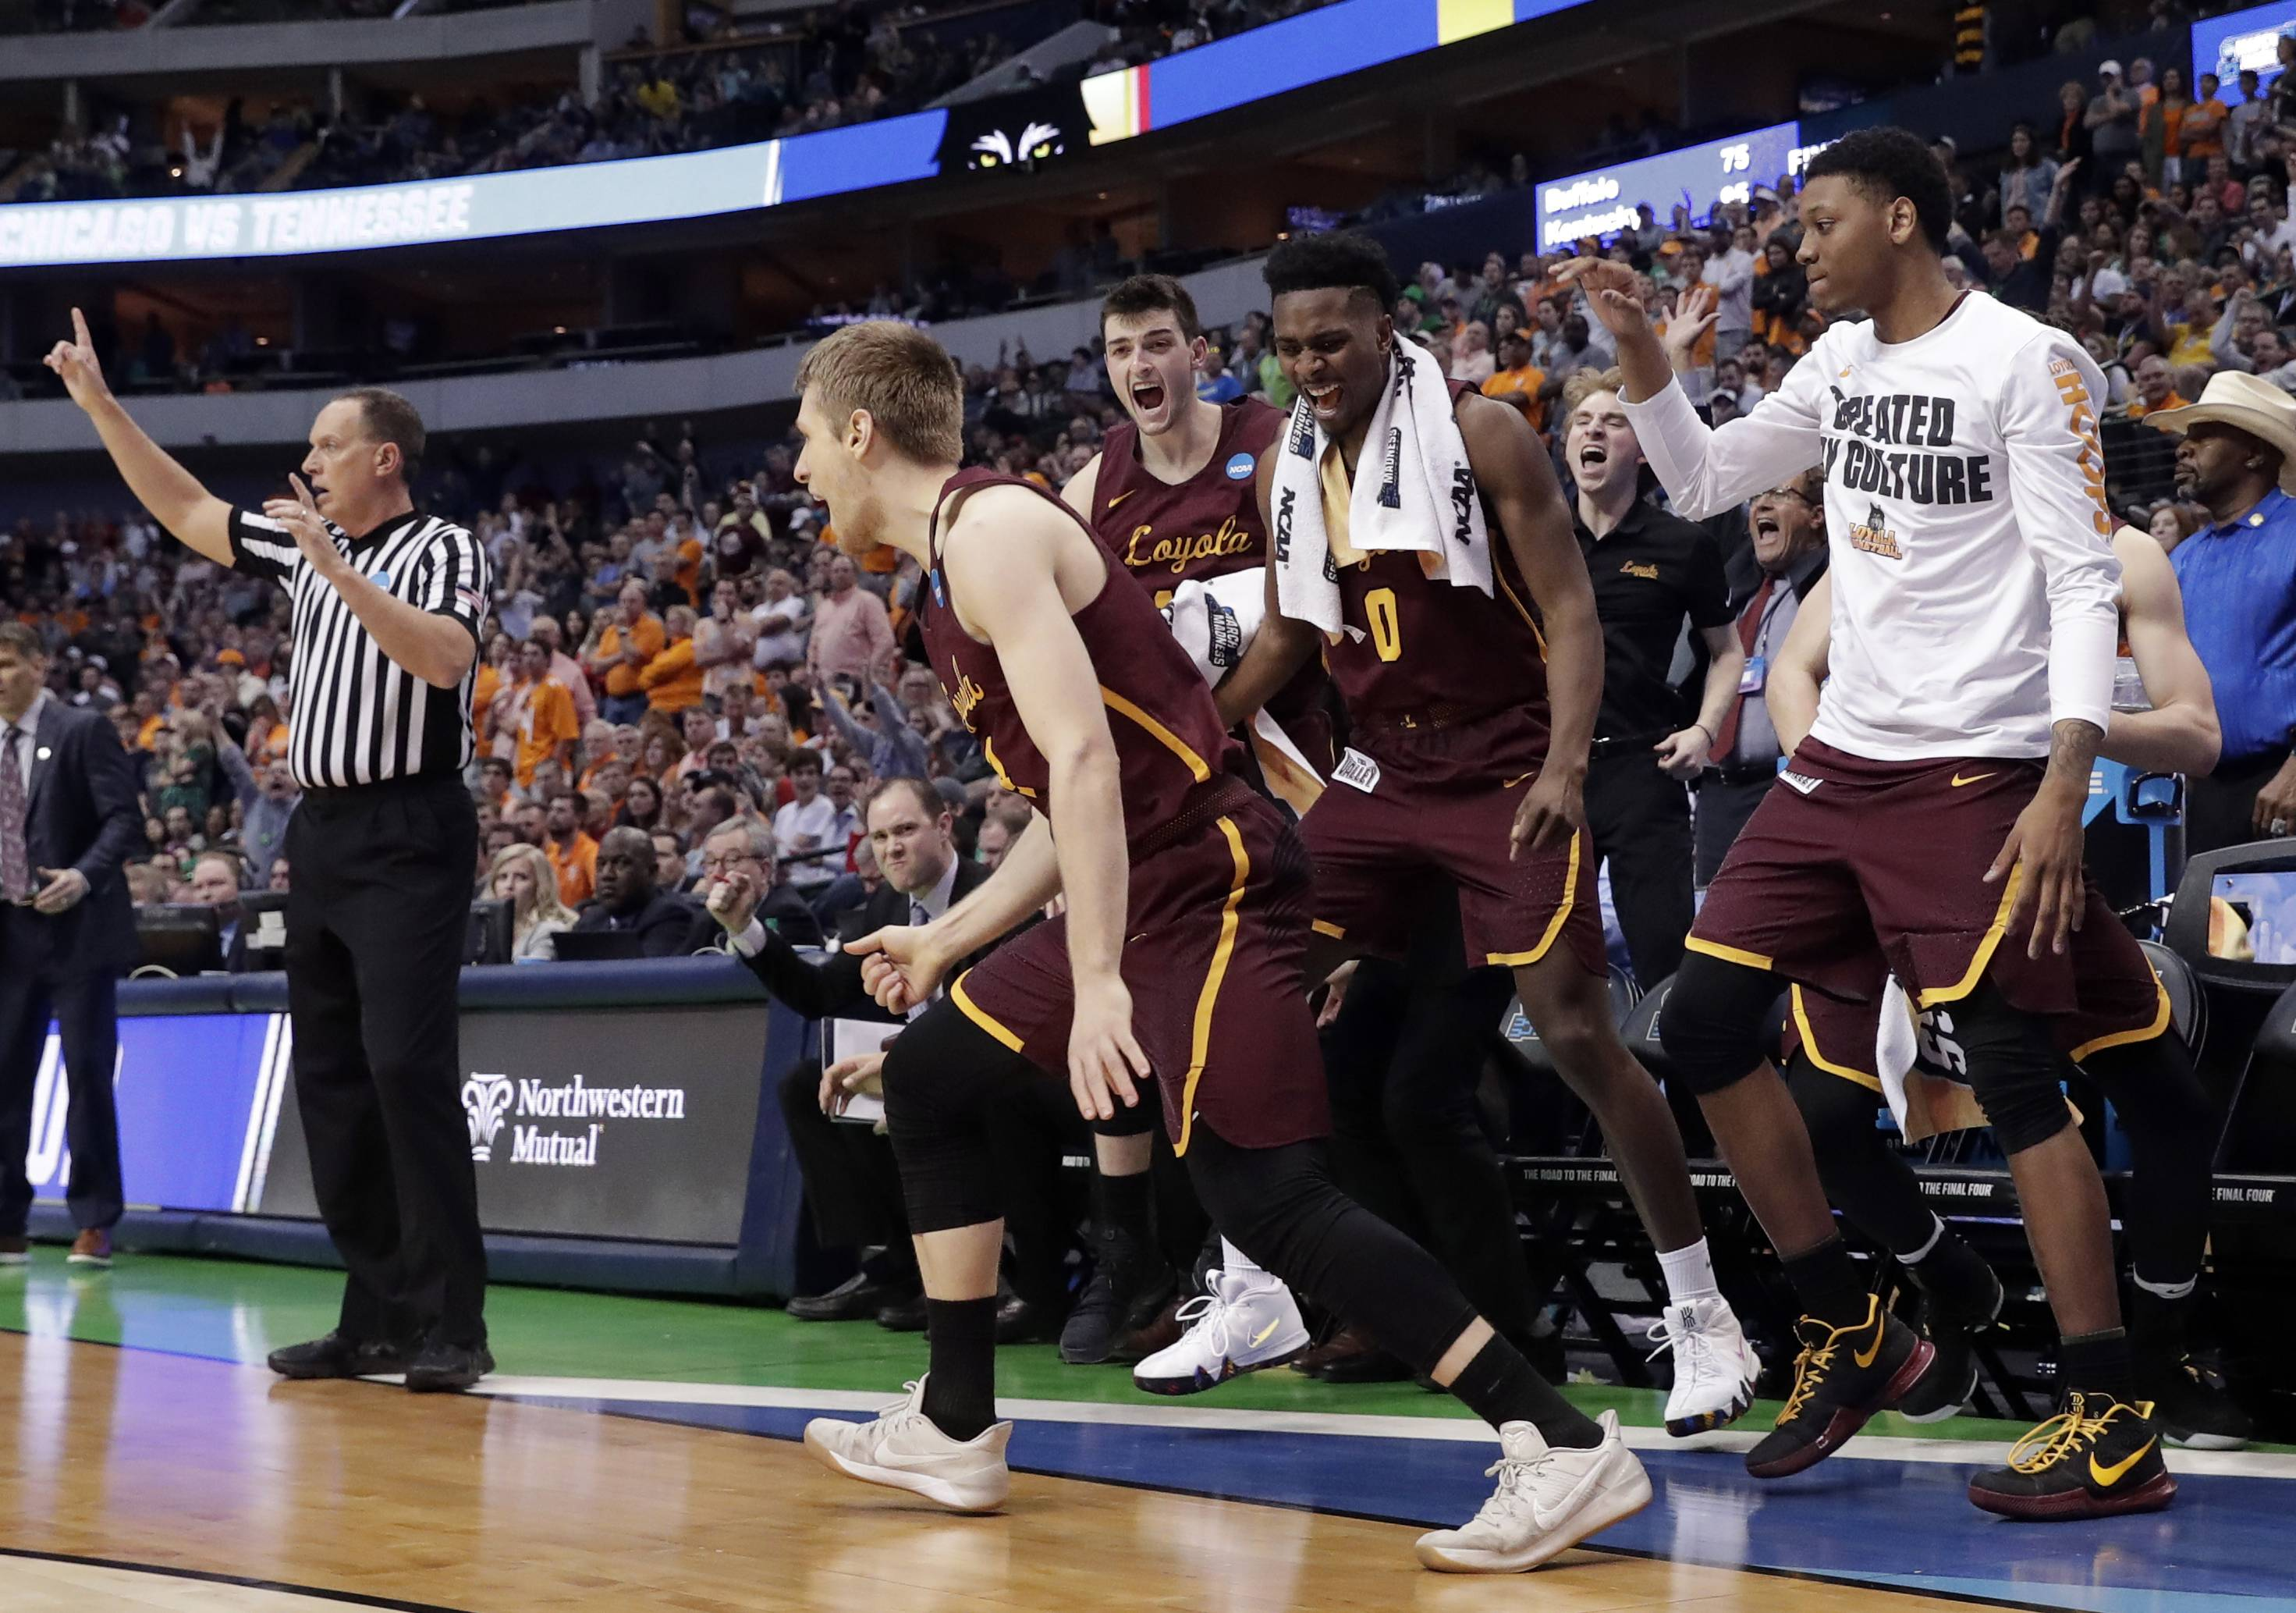 The bench celebrates after Loyola-Chicago guard Bruno Skokna scored on a 3-point basket against Tennessee in the second half of a second-round game at the NCAA men's college basketball tournament in Dallas, Saturday, March 17, 2018. (AP Photo/Tony Gutierrez)